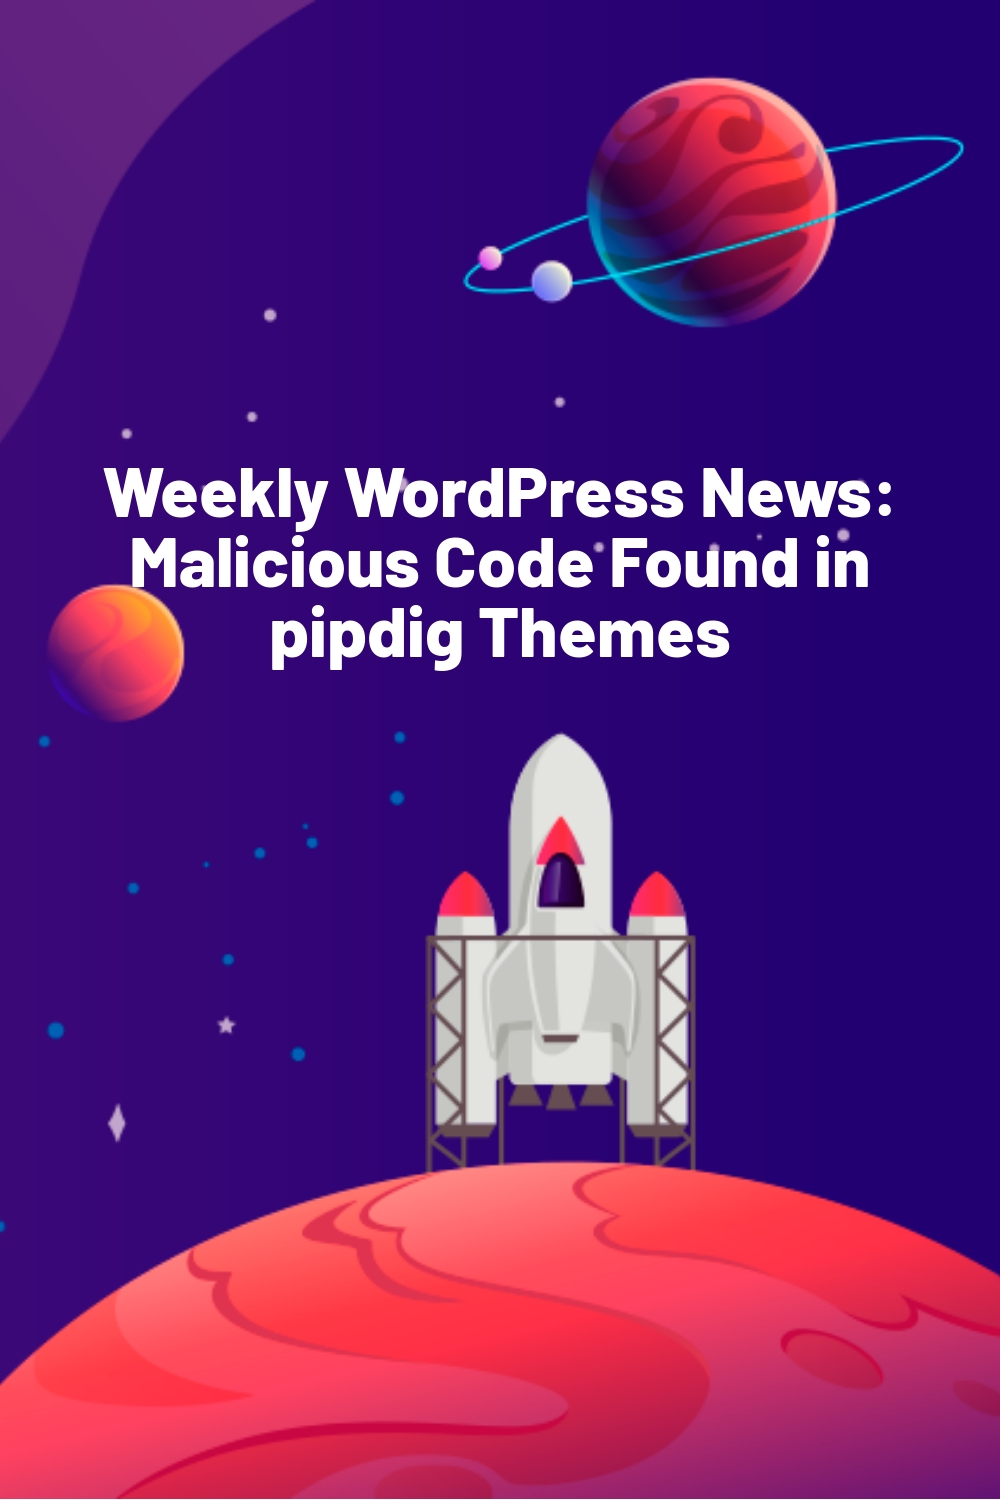 Weekly WordPress News: Malicious Code Found in pipdig Themes